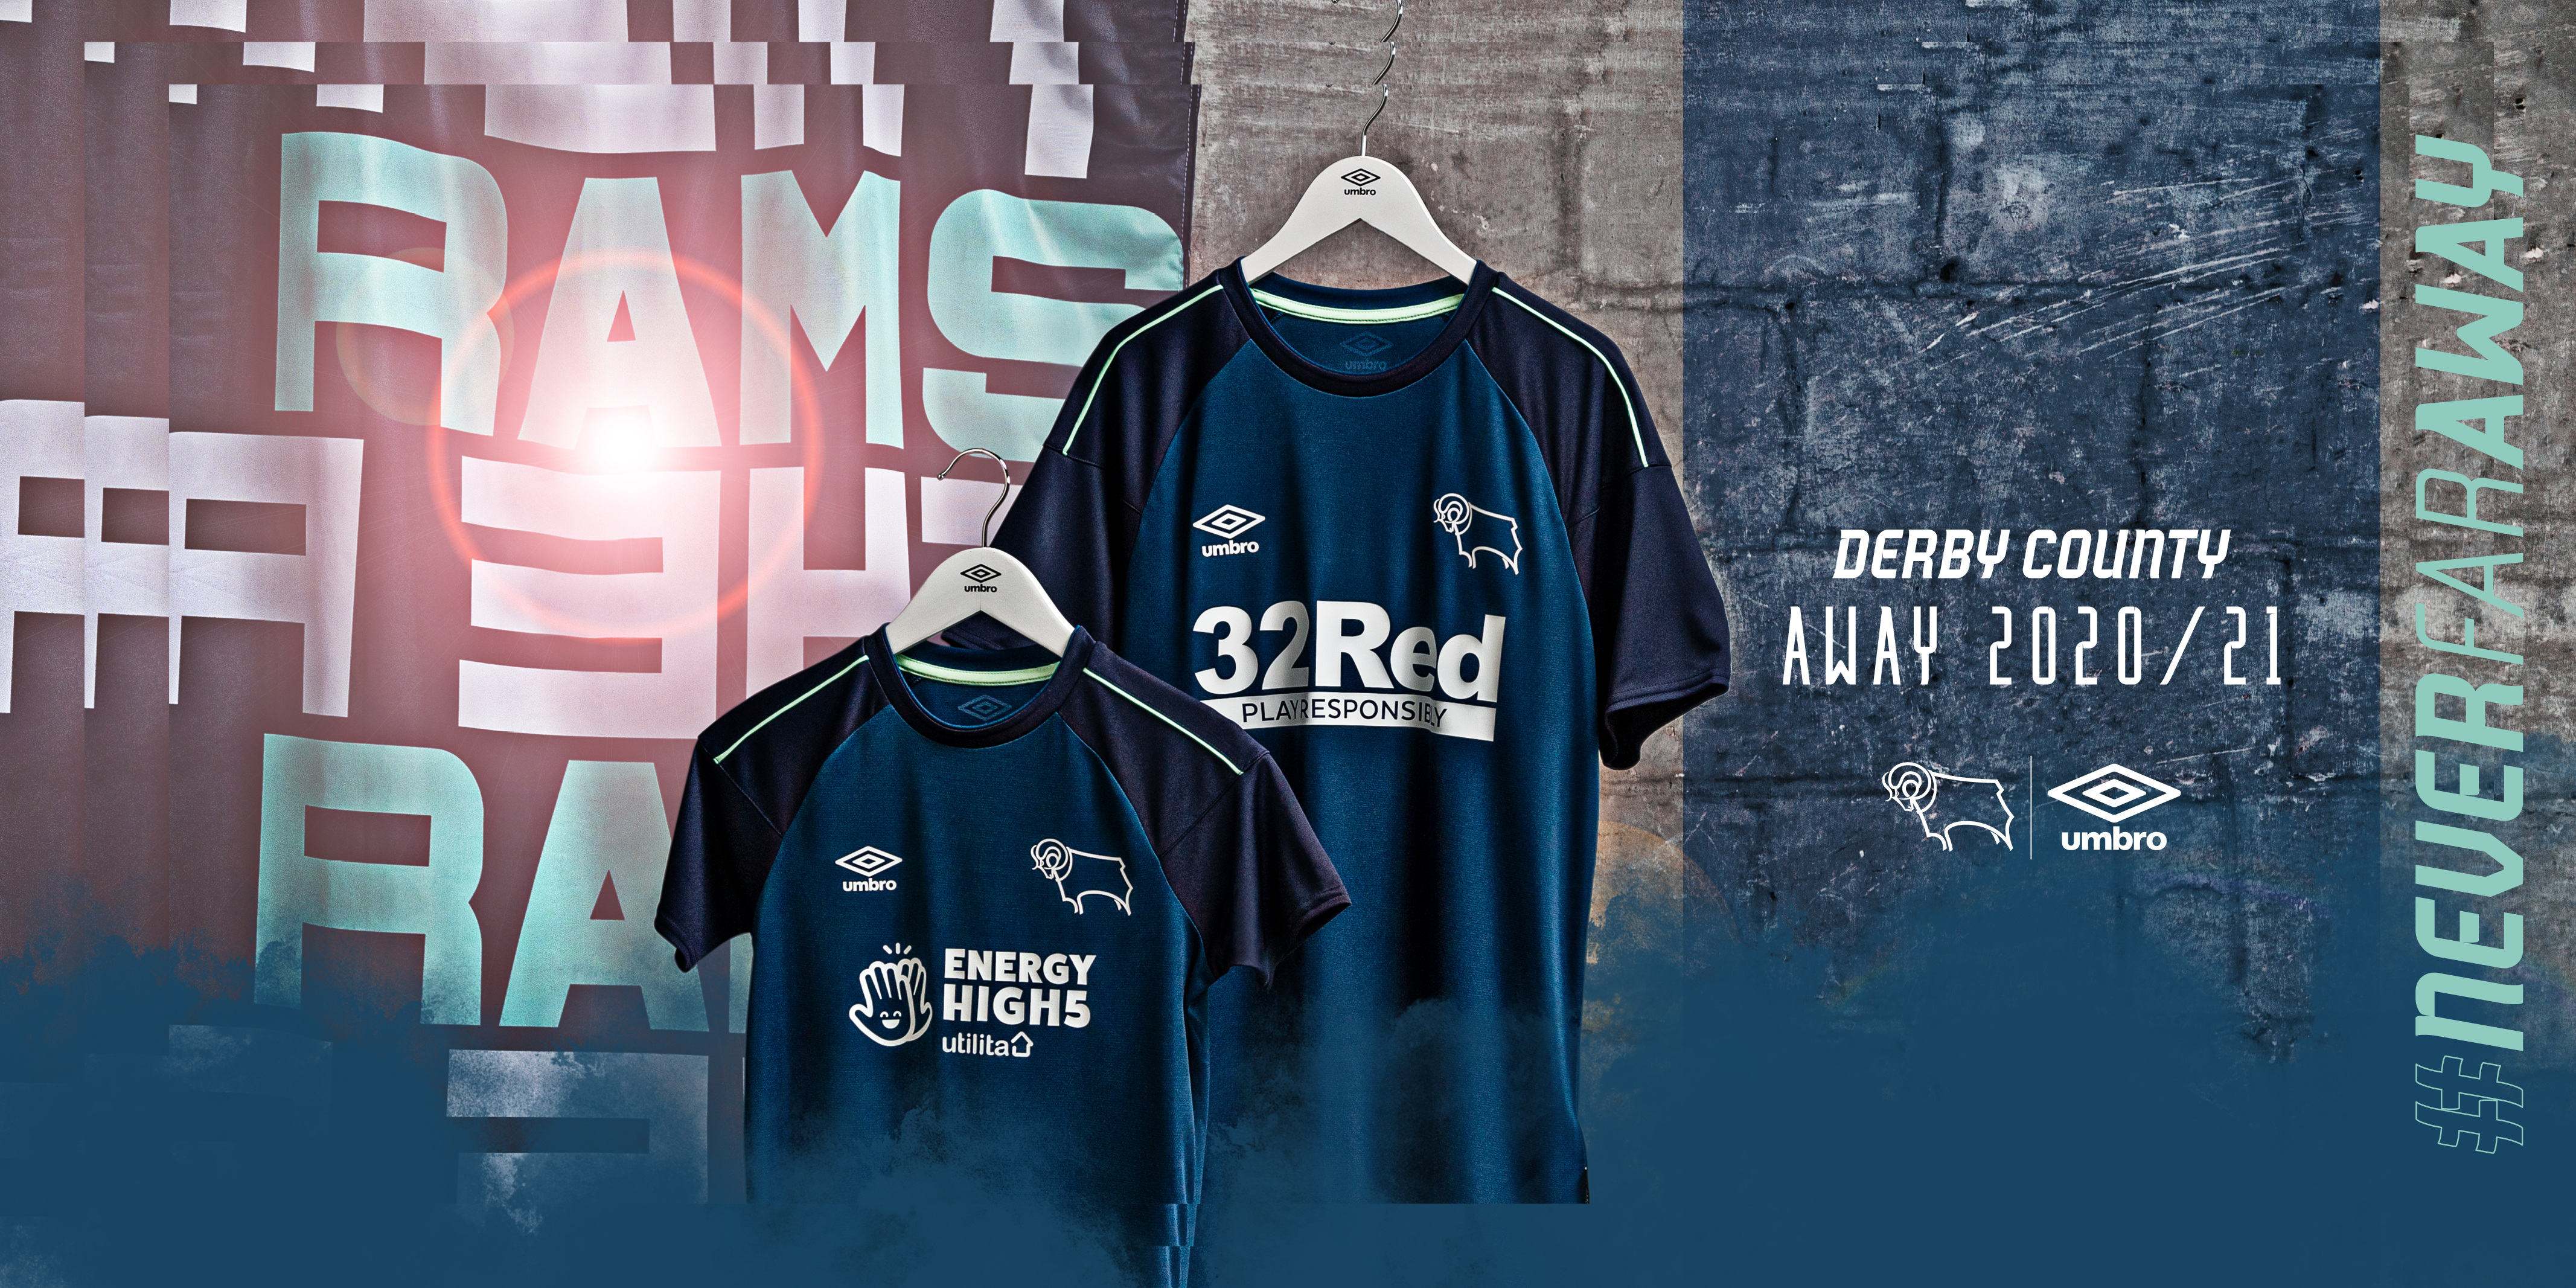 Derby County 2020 21 Away Kit Revealed Blog Derby County